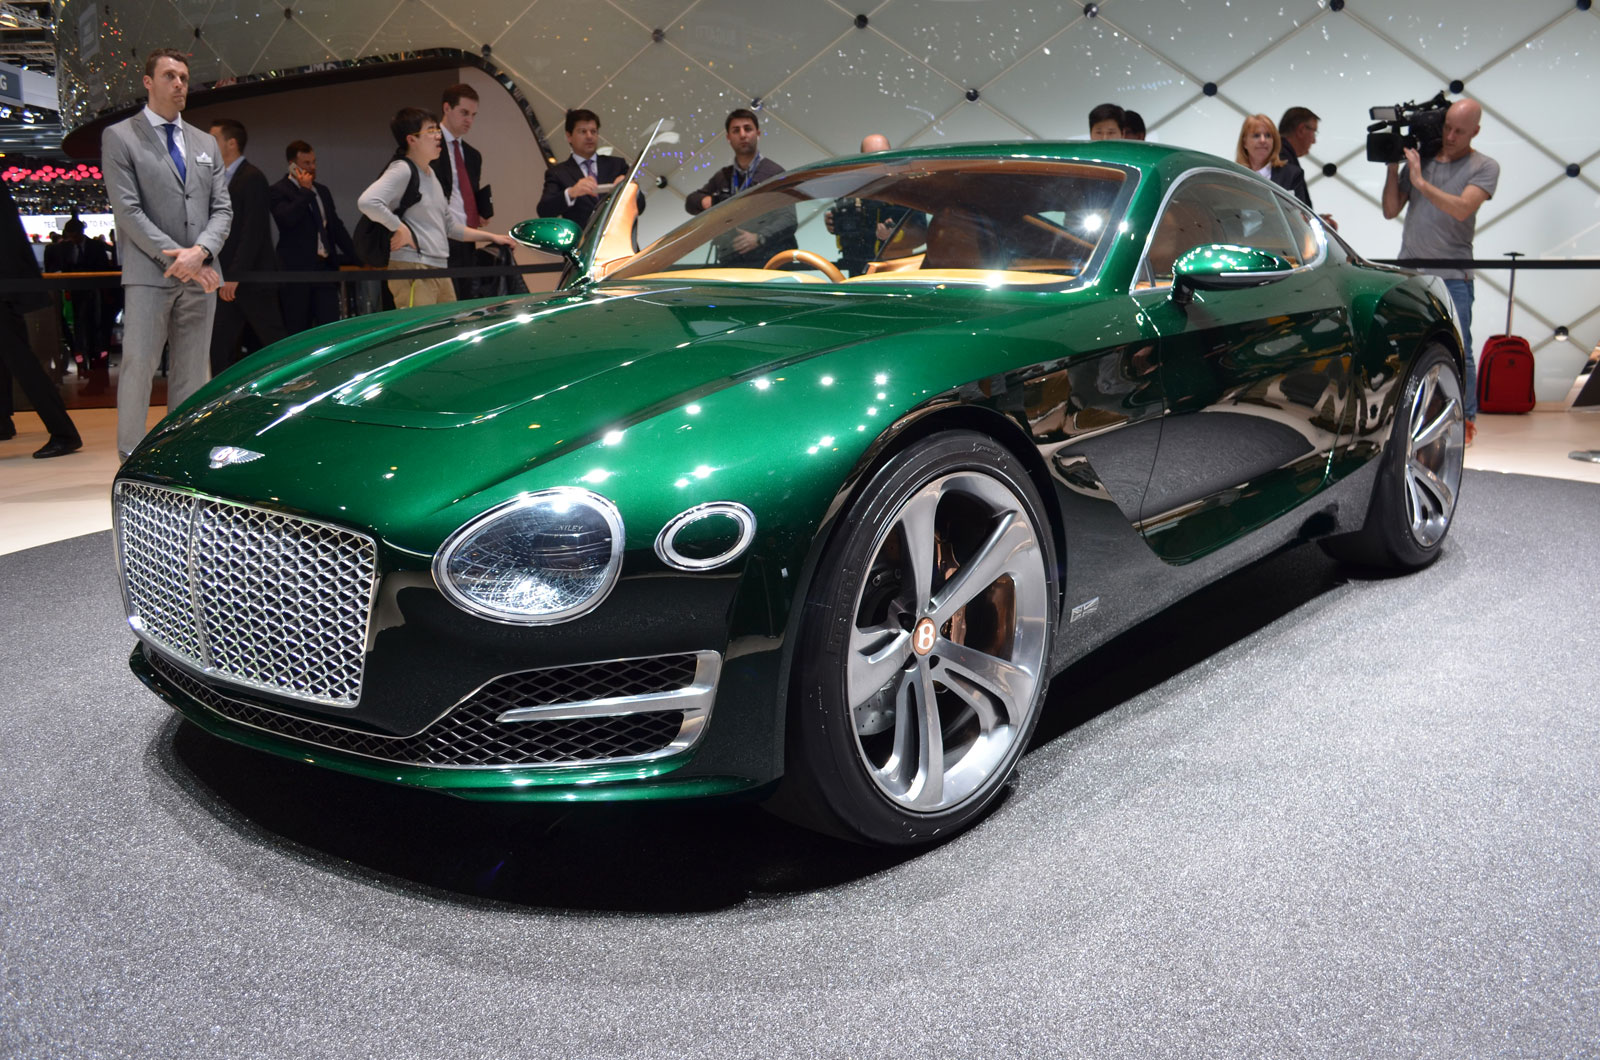 bentley to produce exp 10 speed 6 concept. Black Bedroom Furniture Sets. Home Design Ideas